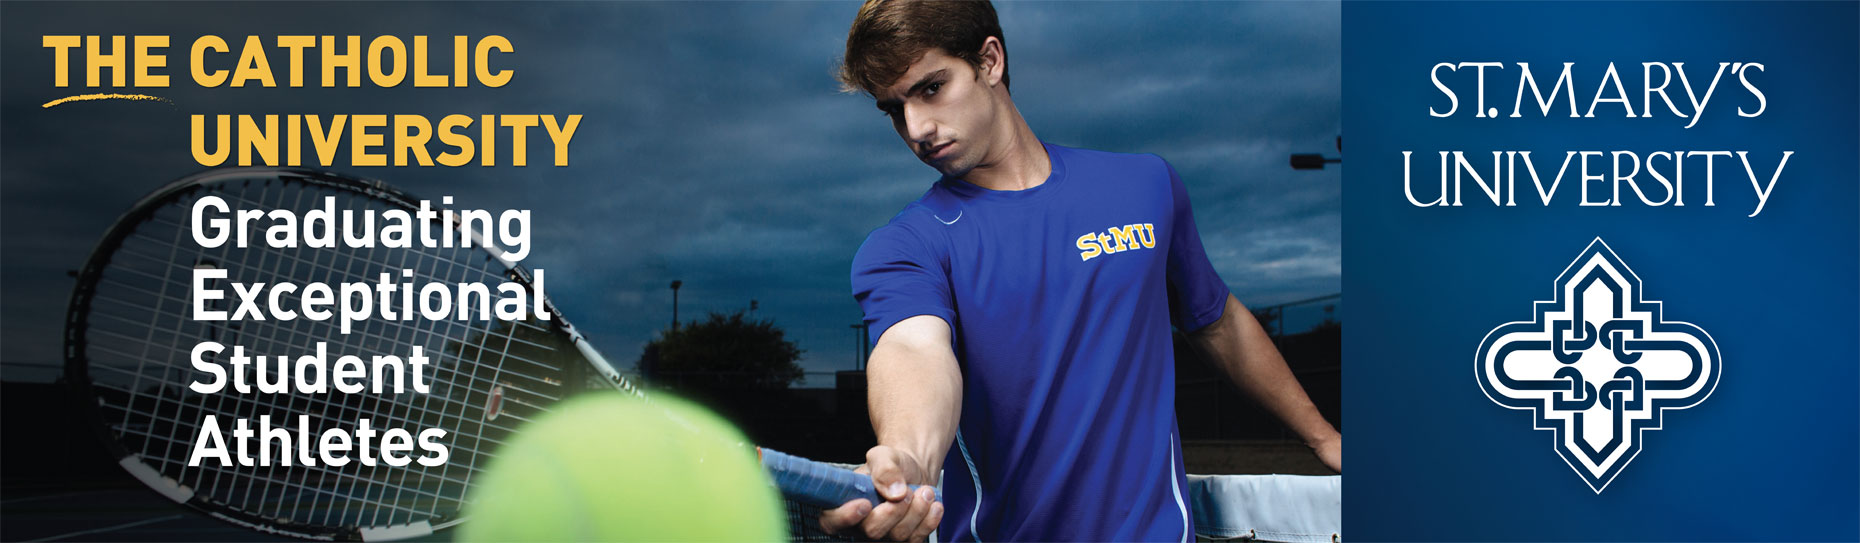 StMarys_billboards_tennis_2014-2015